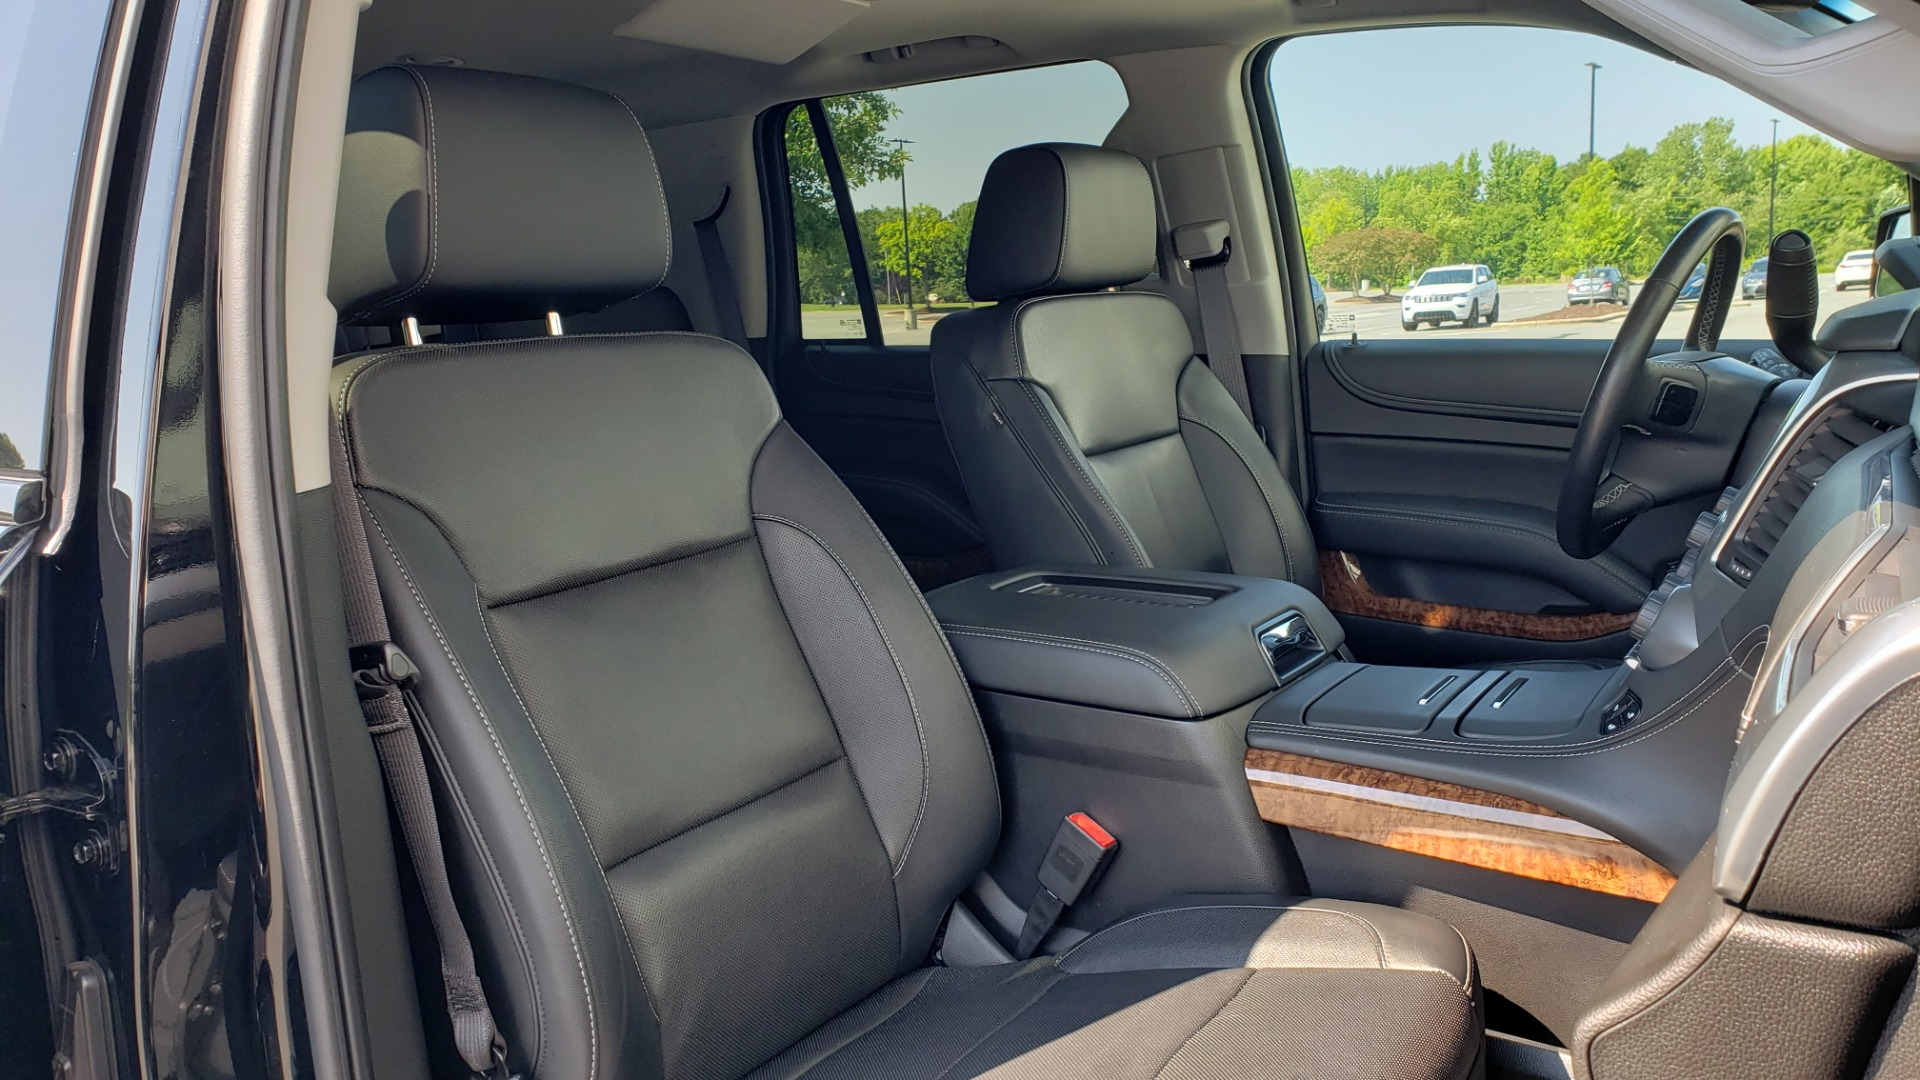 Used 2018 Chevrolet TAHOE PREMIER RST / 4X4 / NAV / BOSE / SUNROOF / 3-ROW / REARVIEW for sale $65,995 at Formula Imports in Charlotte NC 28227 75